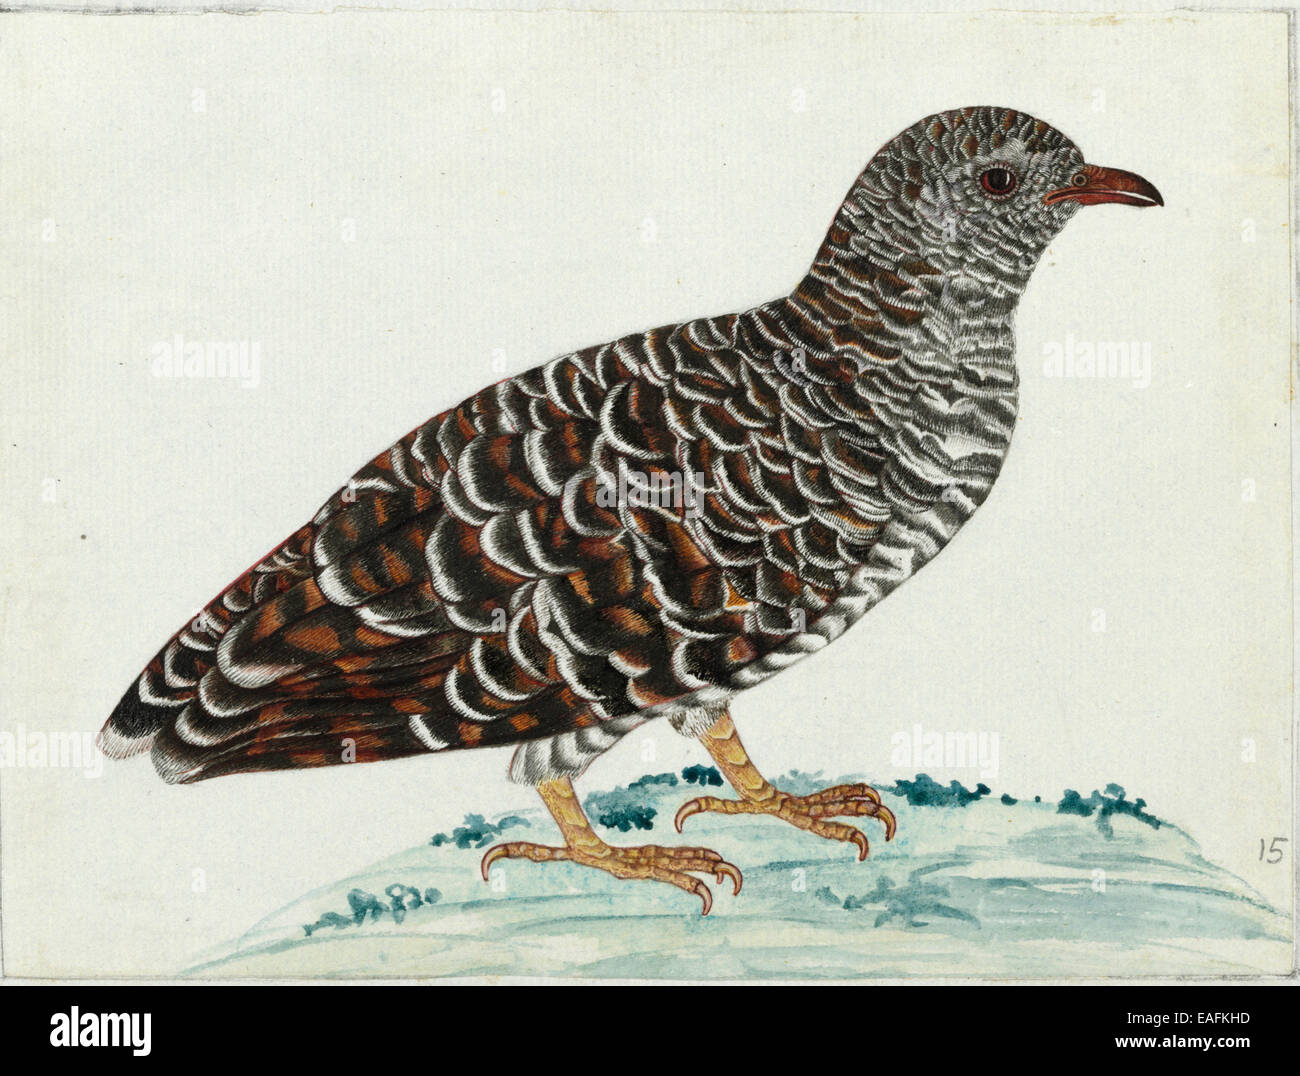 Young Cuckoo sp., Cuculidae Family - Stock Image